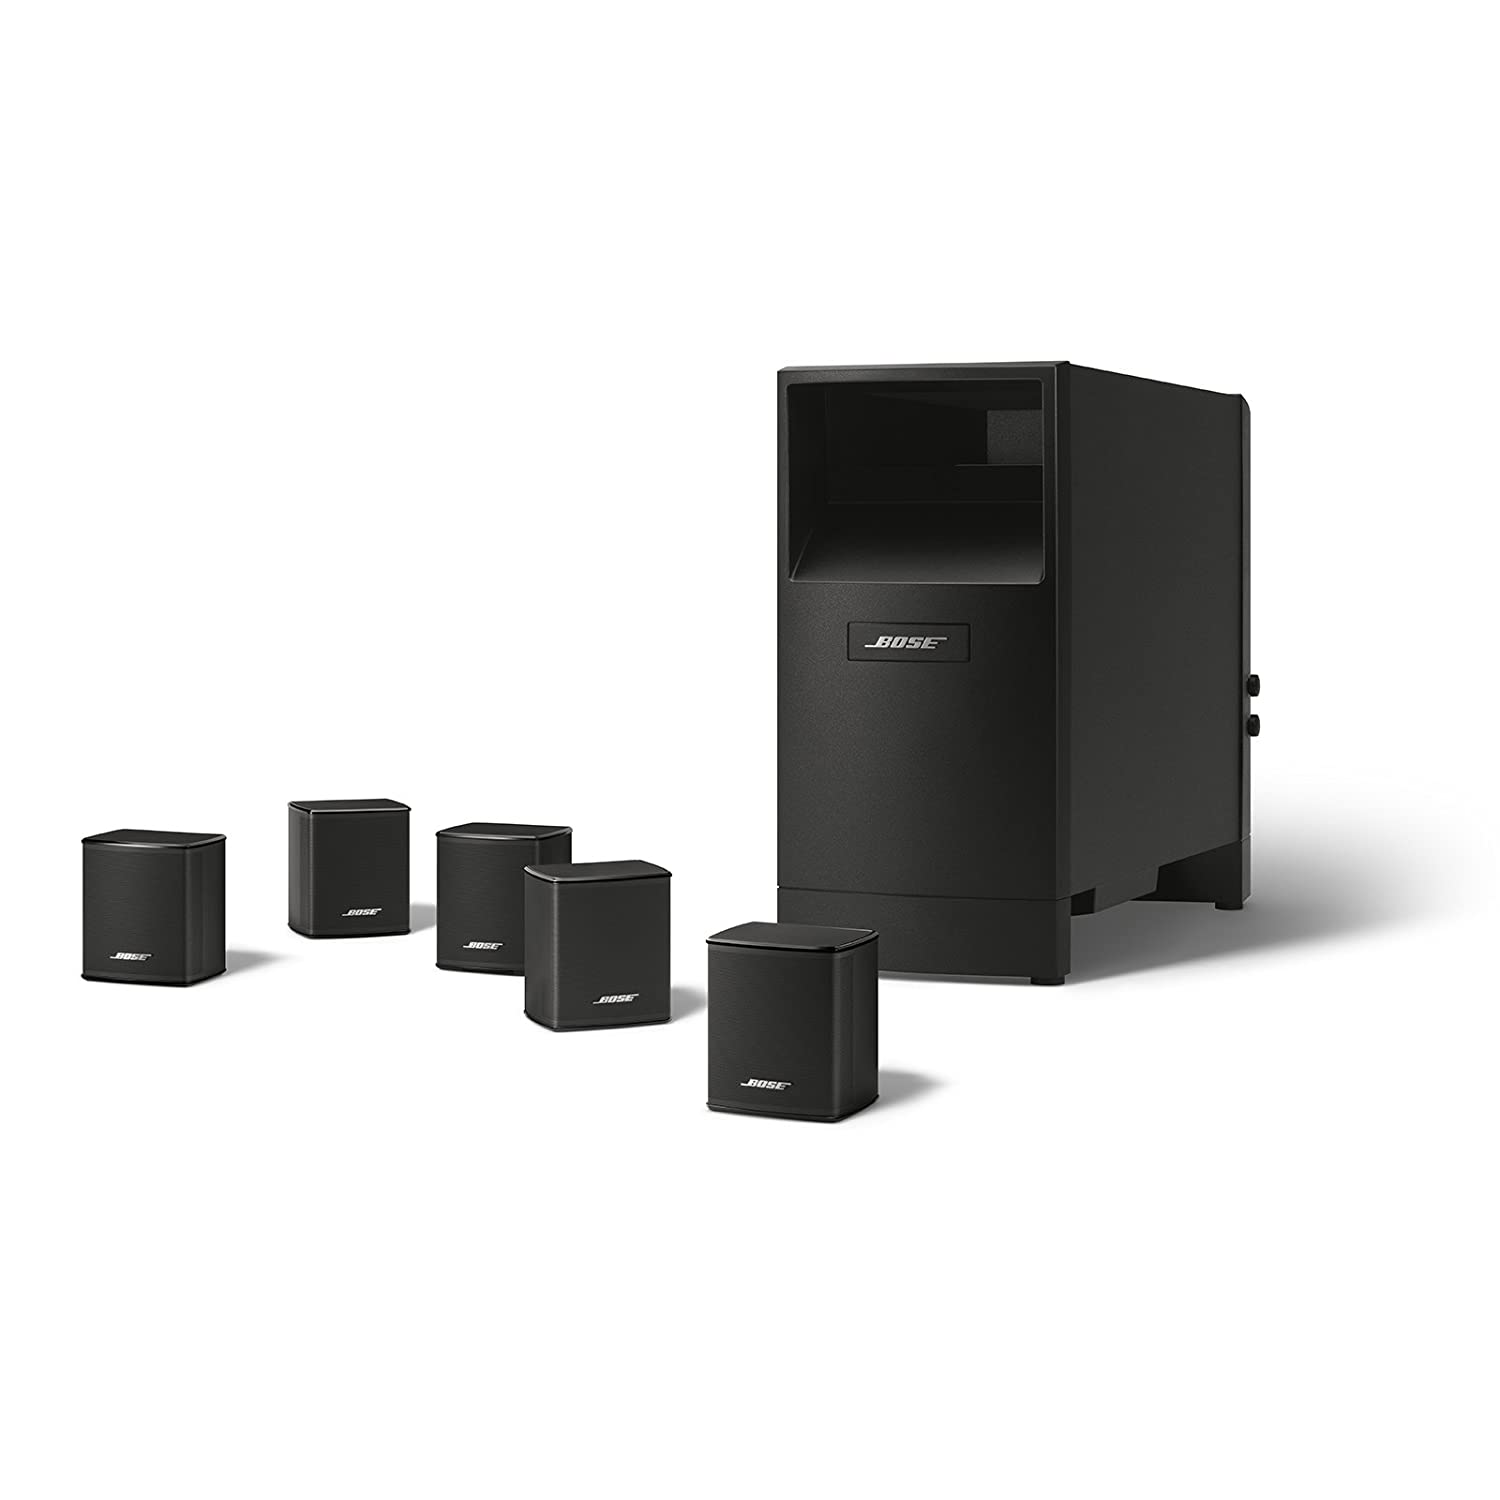 Amazon bose acoustimass 6 series v home theater speaker amazon bose acoustimass 6 series v home theater speaker system black home audio theater sciox Choice Image